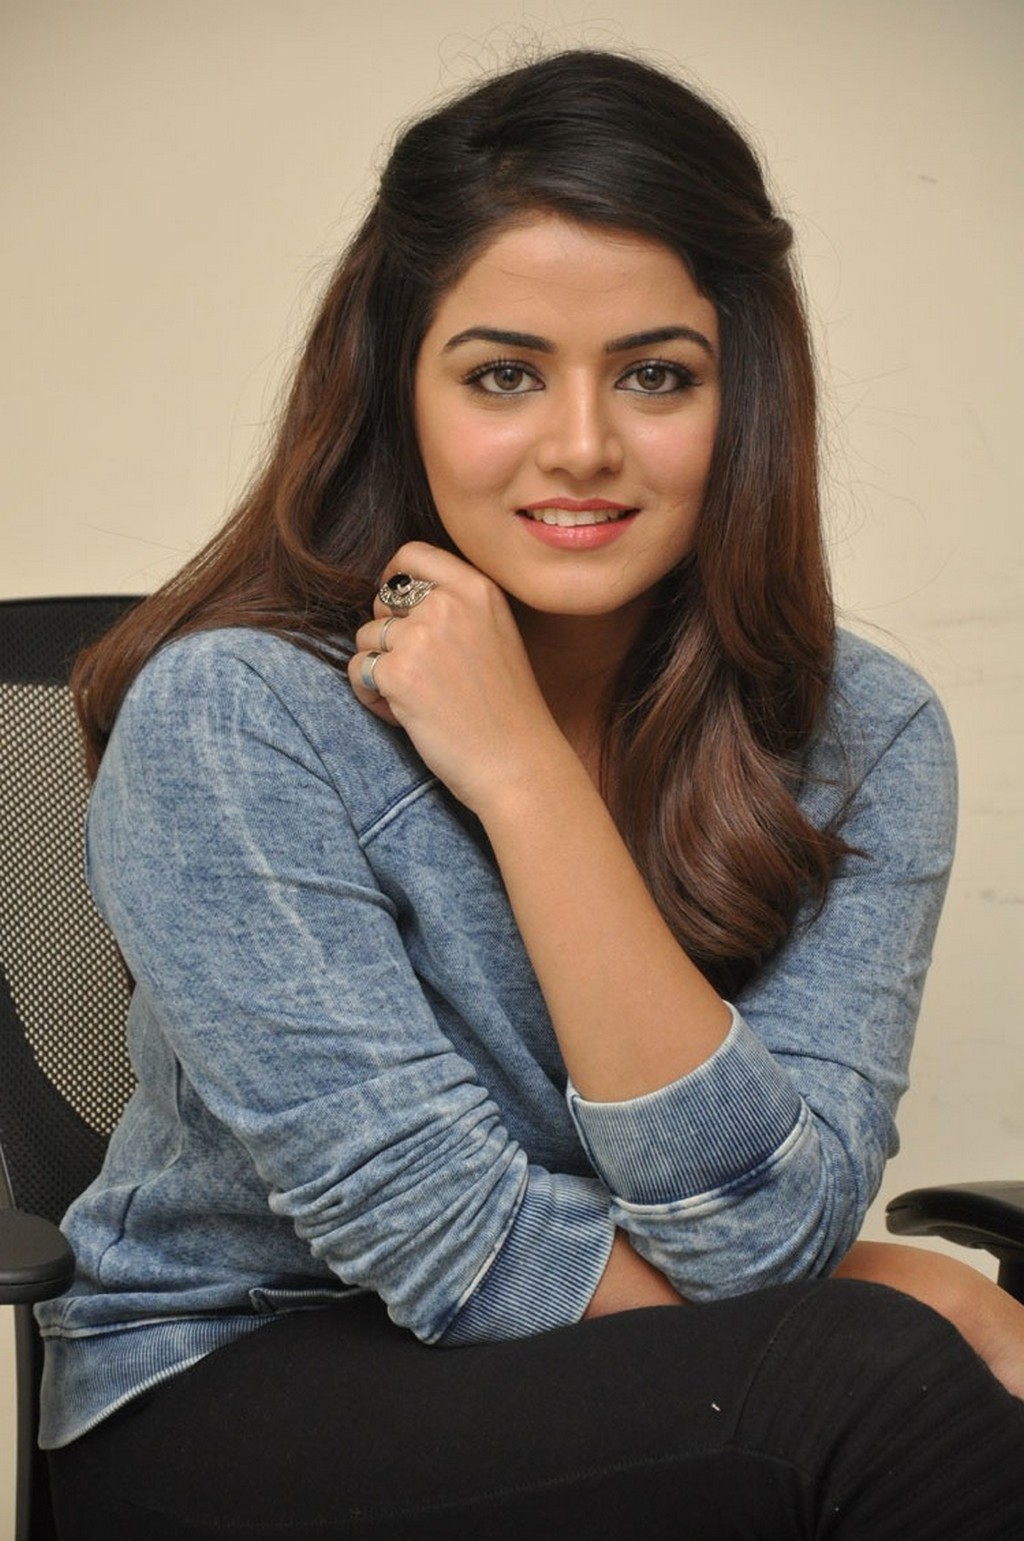 Glamours Tollywood Actress Wamiqa Gabbi Hot Photos In Blue Top Black Jeans